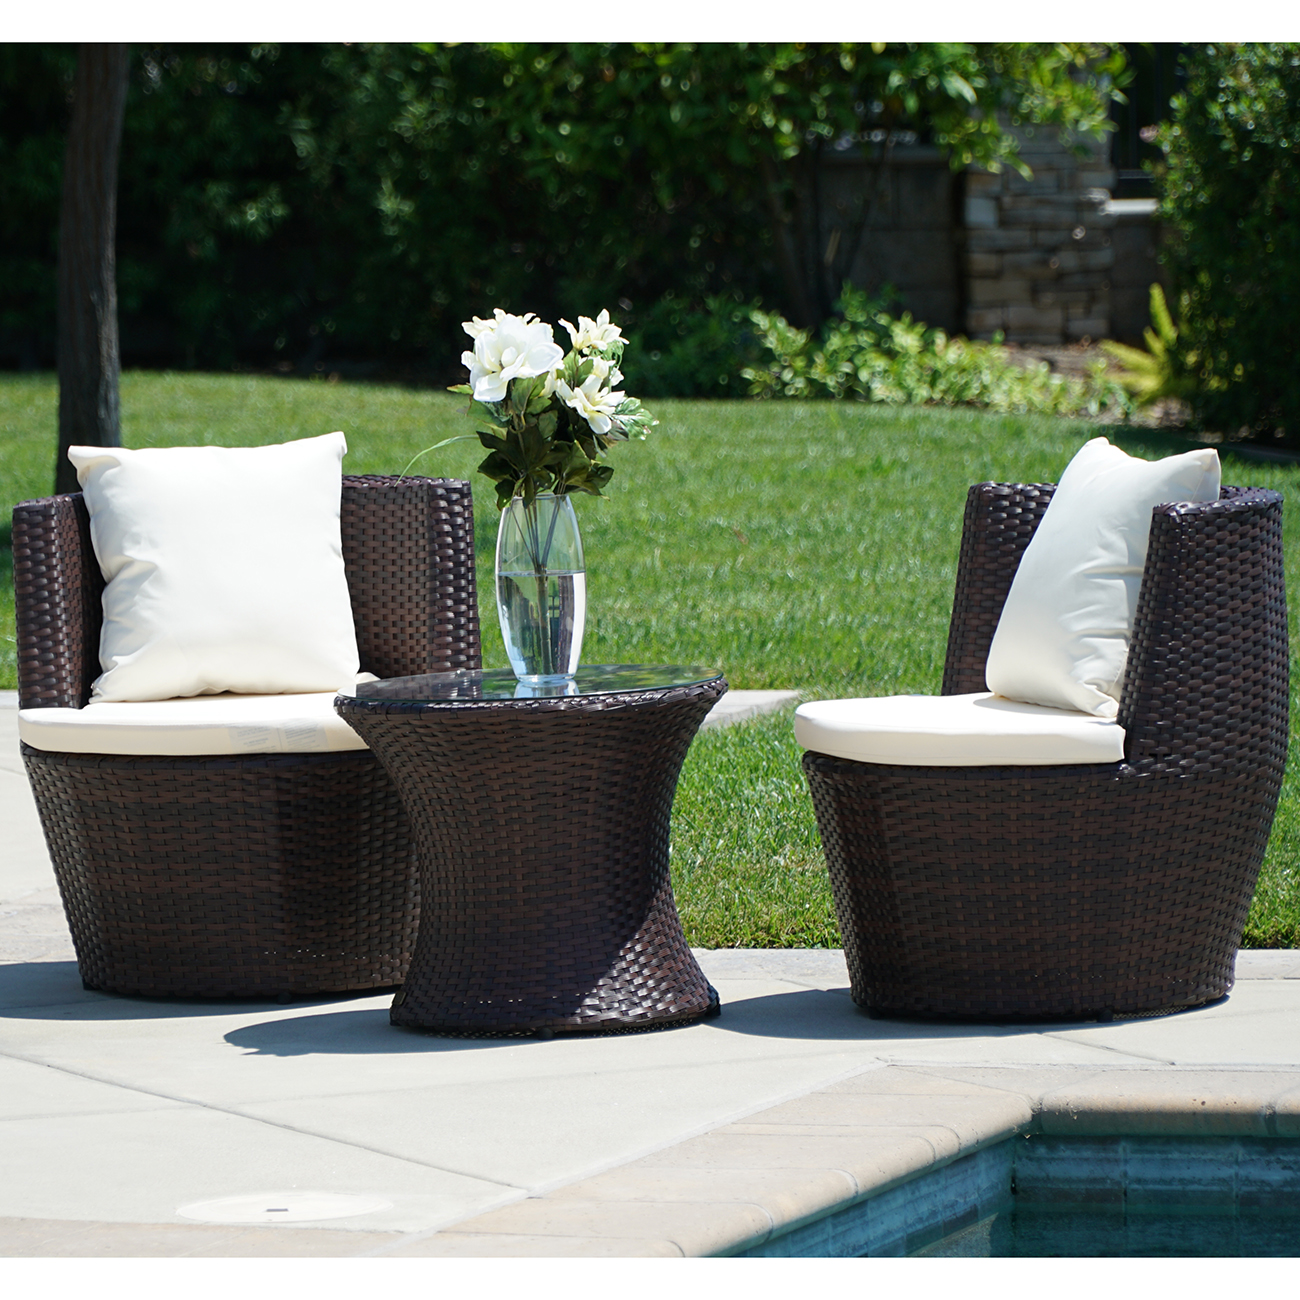 Rattan Outdoor Chairs 3 Pc Patio Outdoor Rattan Set Wicker Furniture Glass